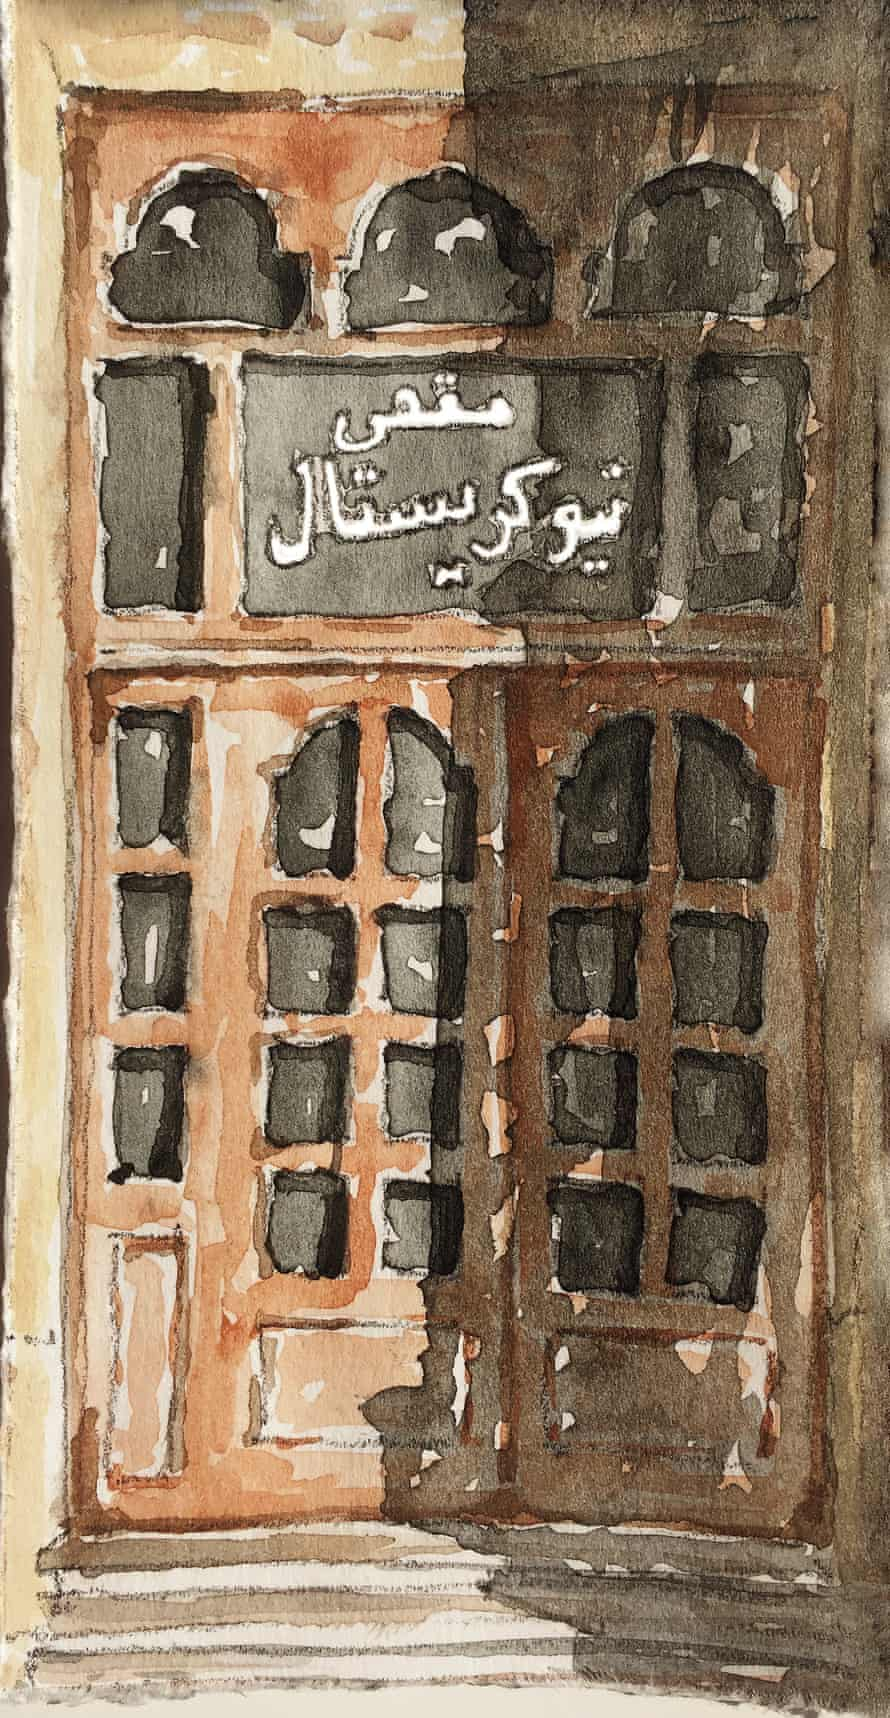 These panels of wood and glass were the entrance of one of the oldest traditional coffee houses on the corniche, which was completely demolished this year. The Arabic writing says Maqha New Crystal – or the coffee house of new crystal. My personal experience with this place is that it was where I first met the French artist Julien Solé while he was drawing inside.